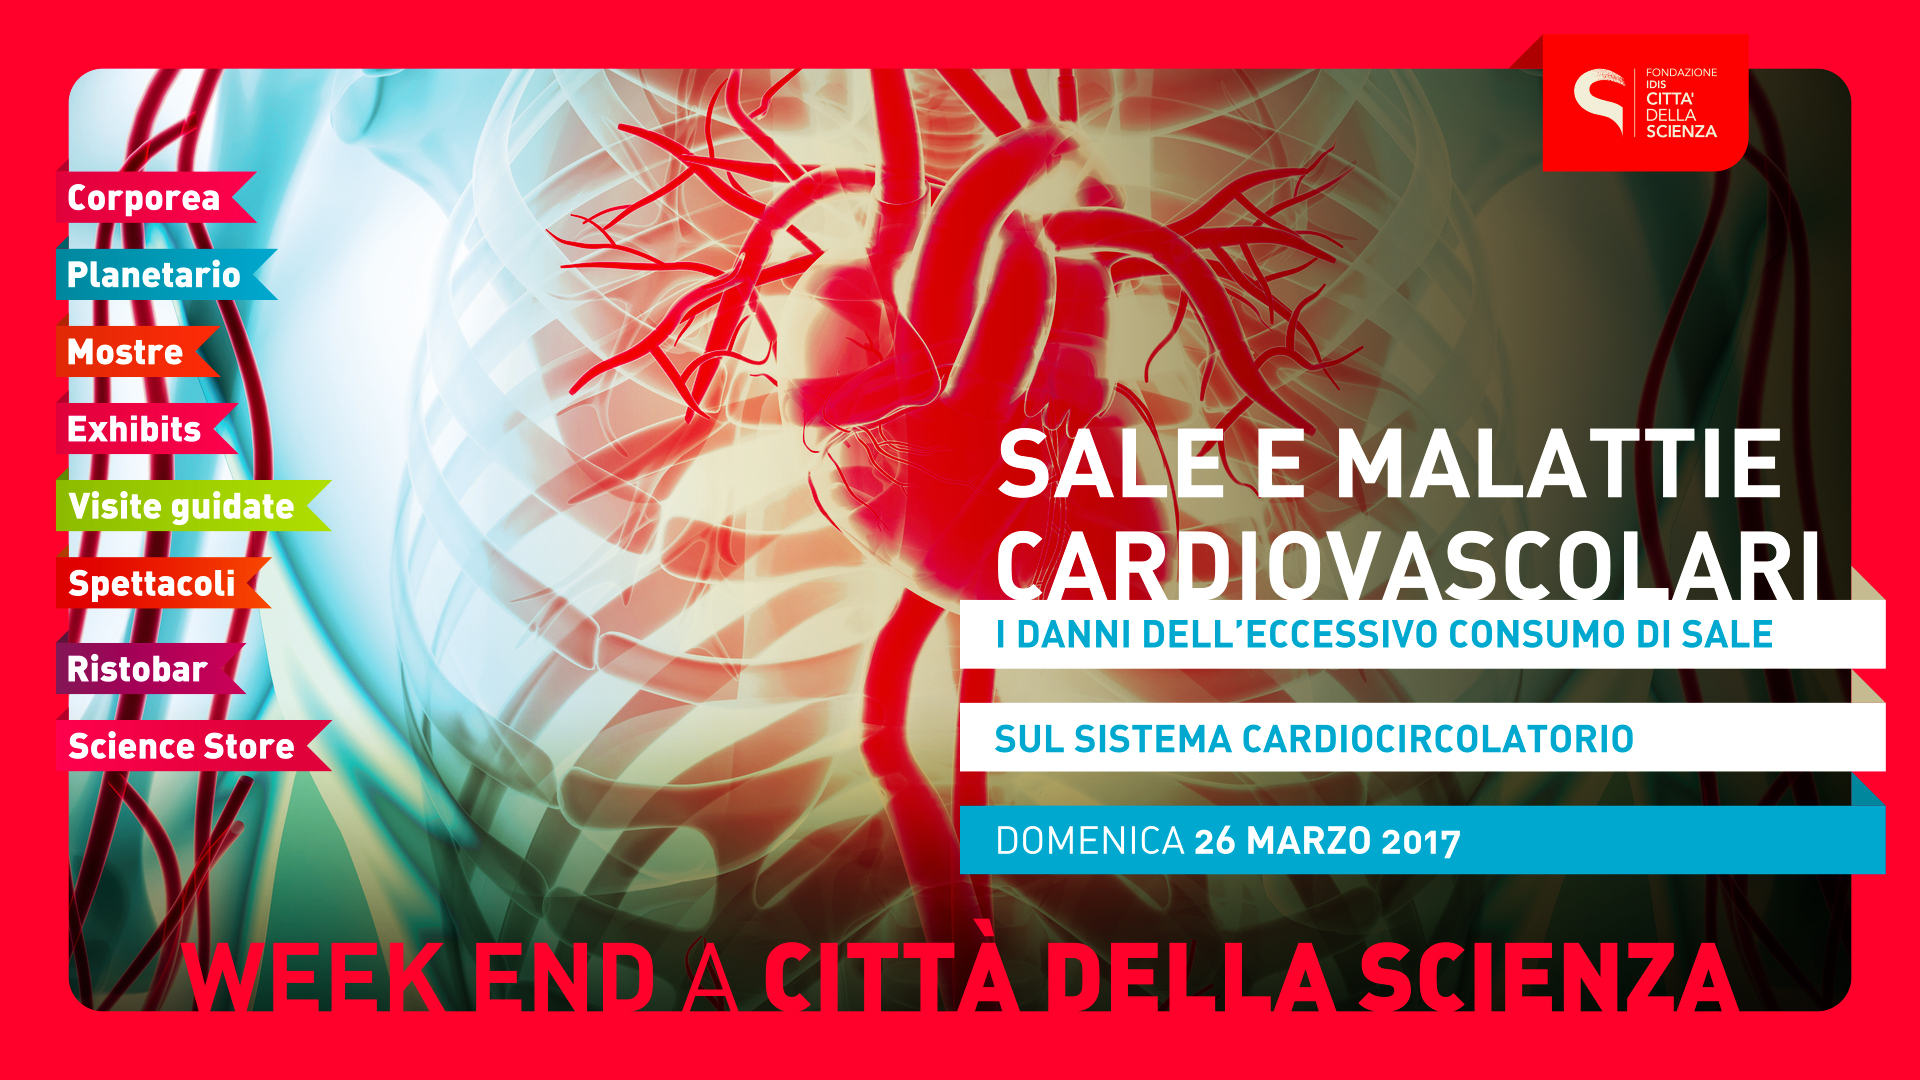 ADV_WEEK_END_(marzo_2017)_004.cdr